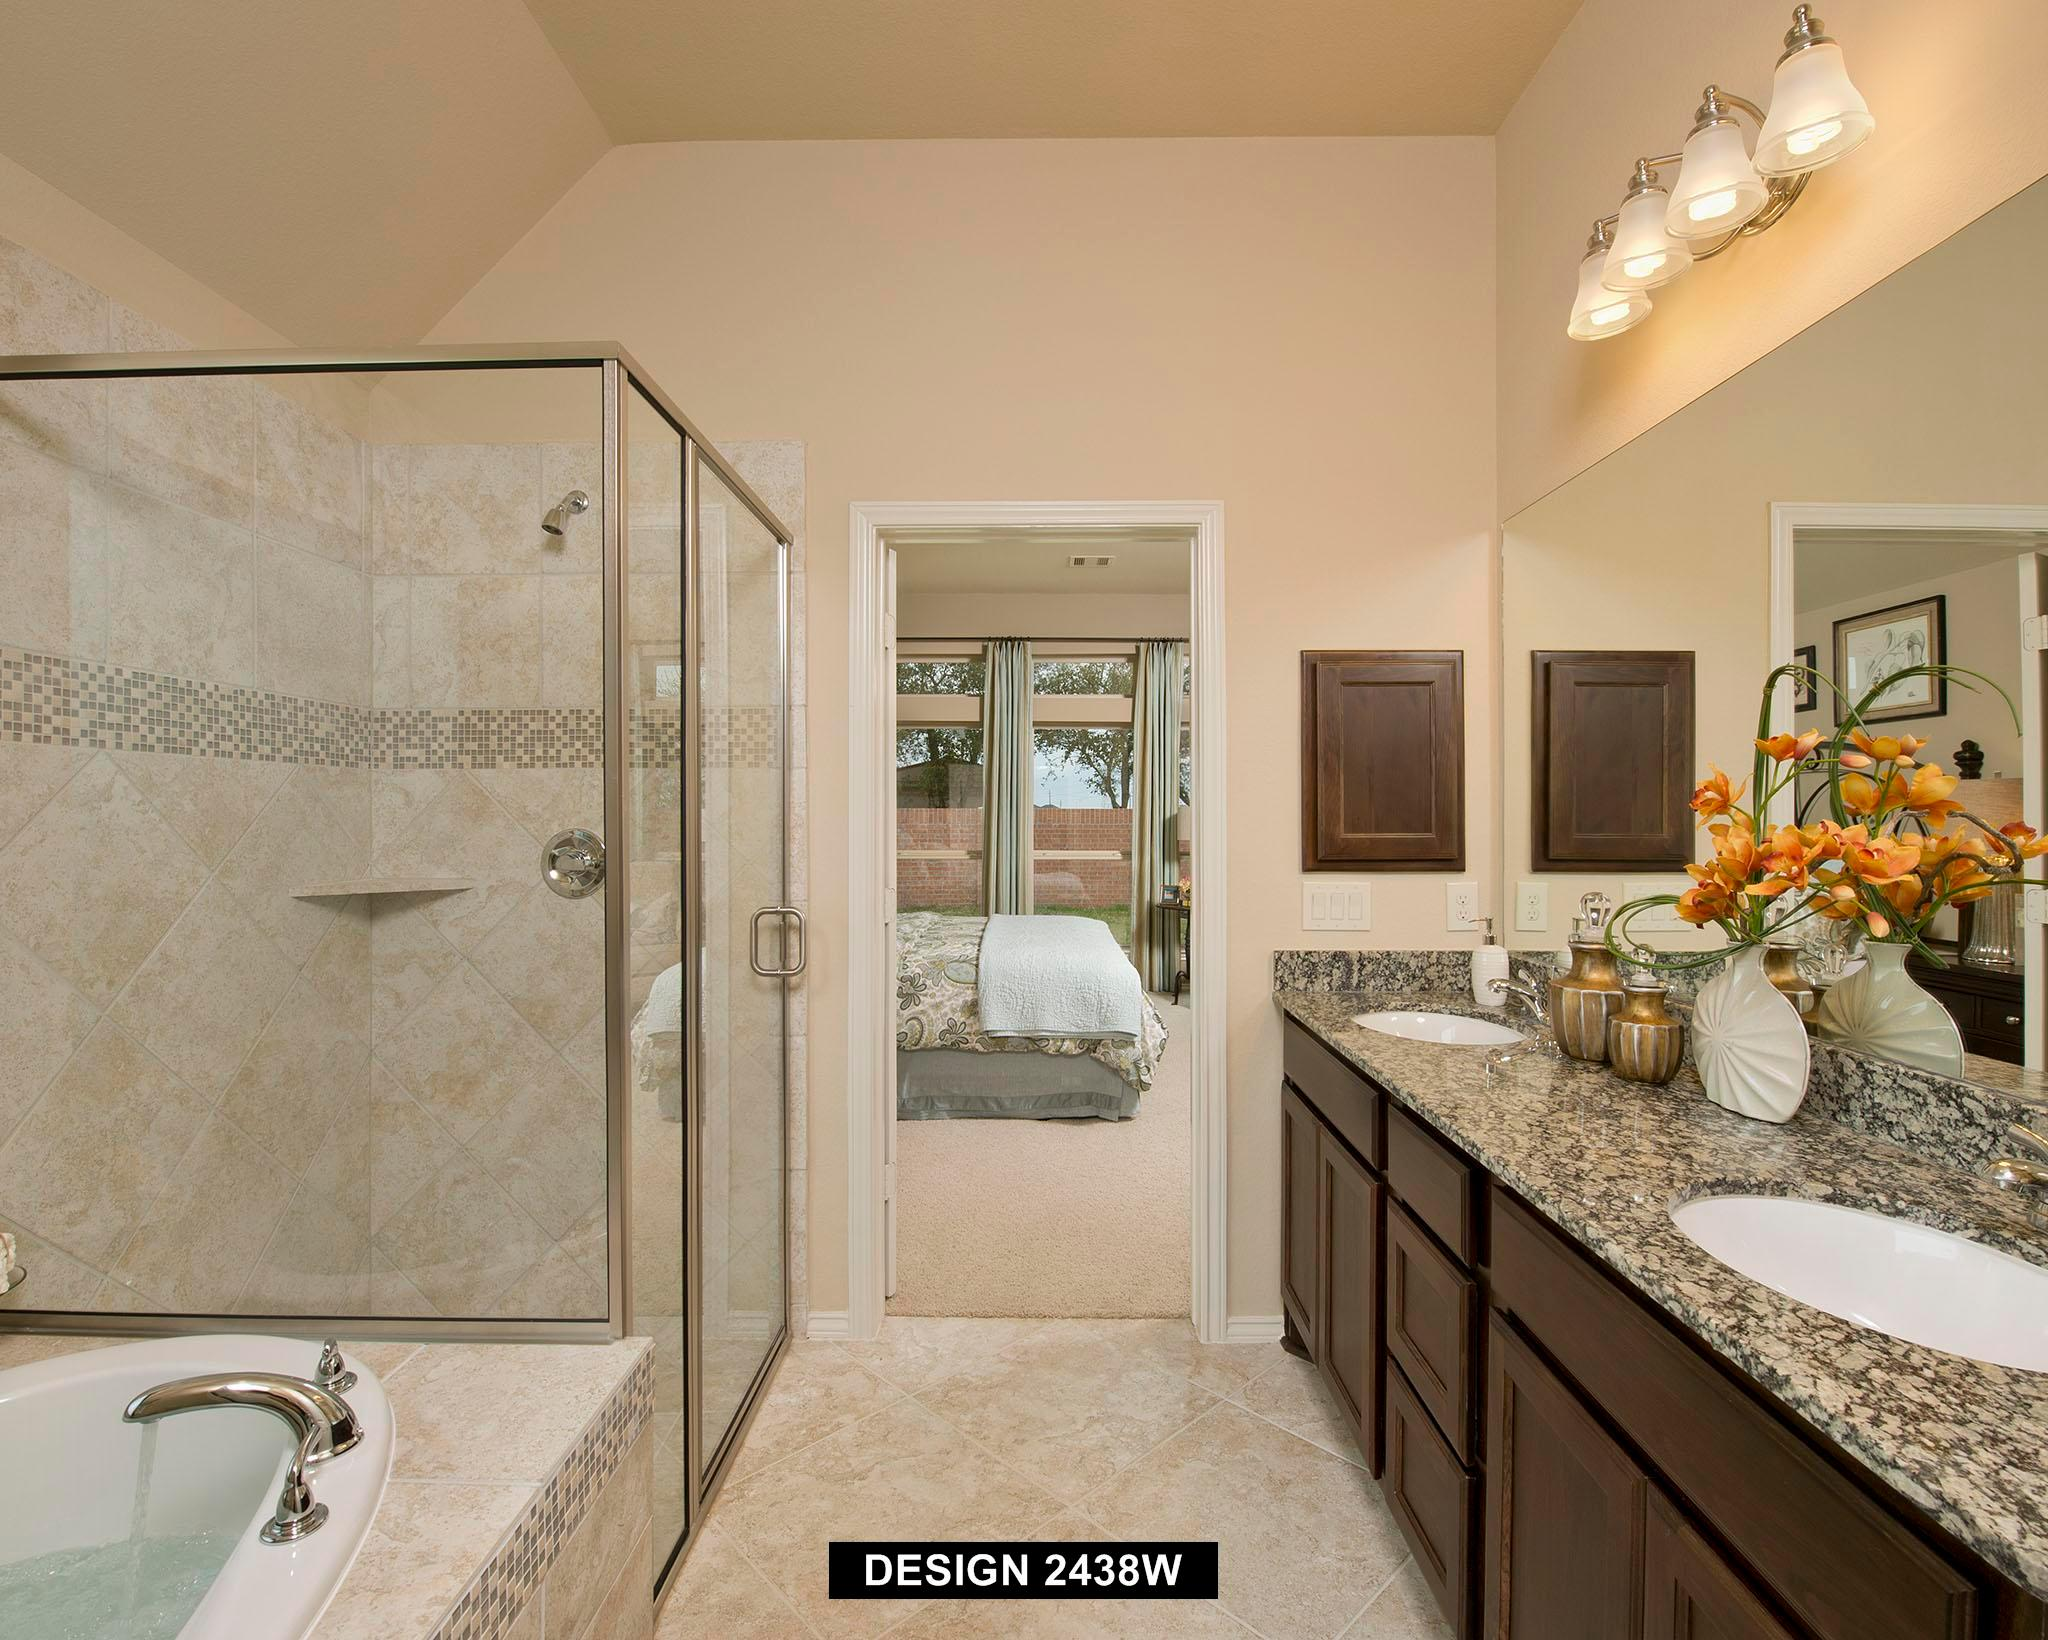 Bathroom featured in the 2438W By Perry Homes in Houston, TX